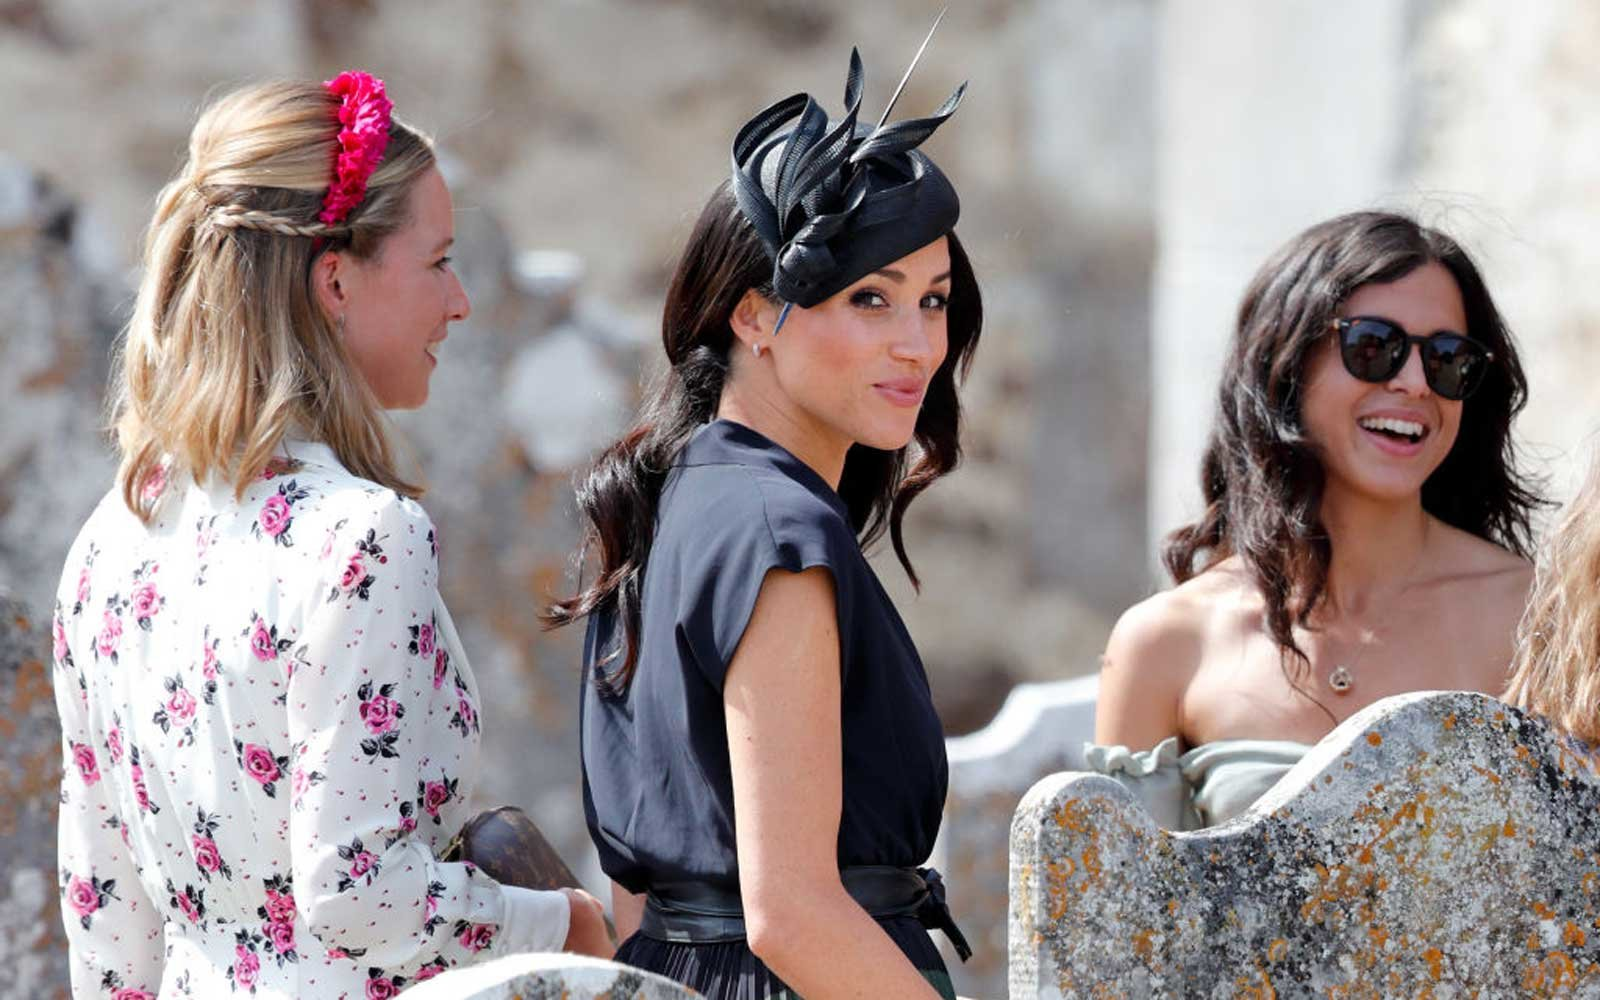 Meghan, Duchess of Sussex attends the wedding of Charlie van Straubenzee and Daisy Jenks at the church of St Mary the Virgin